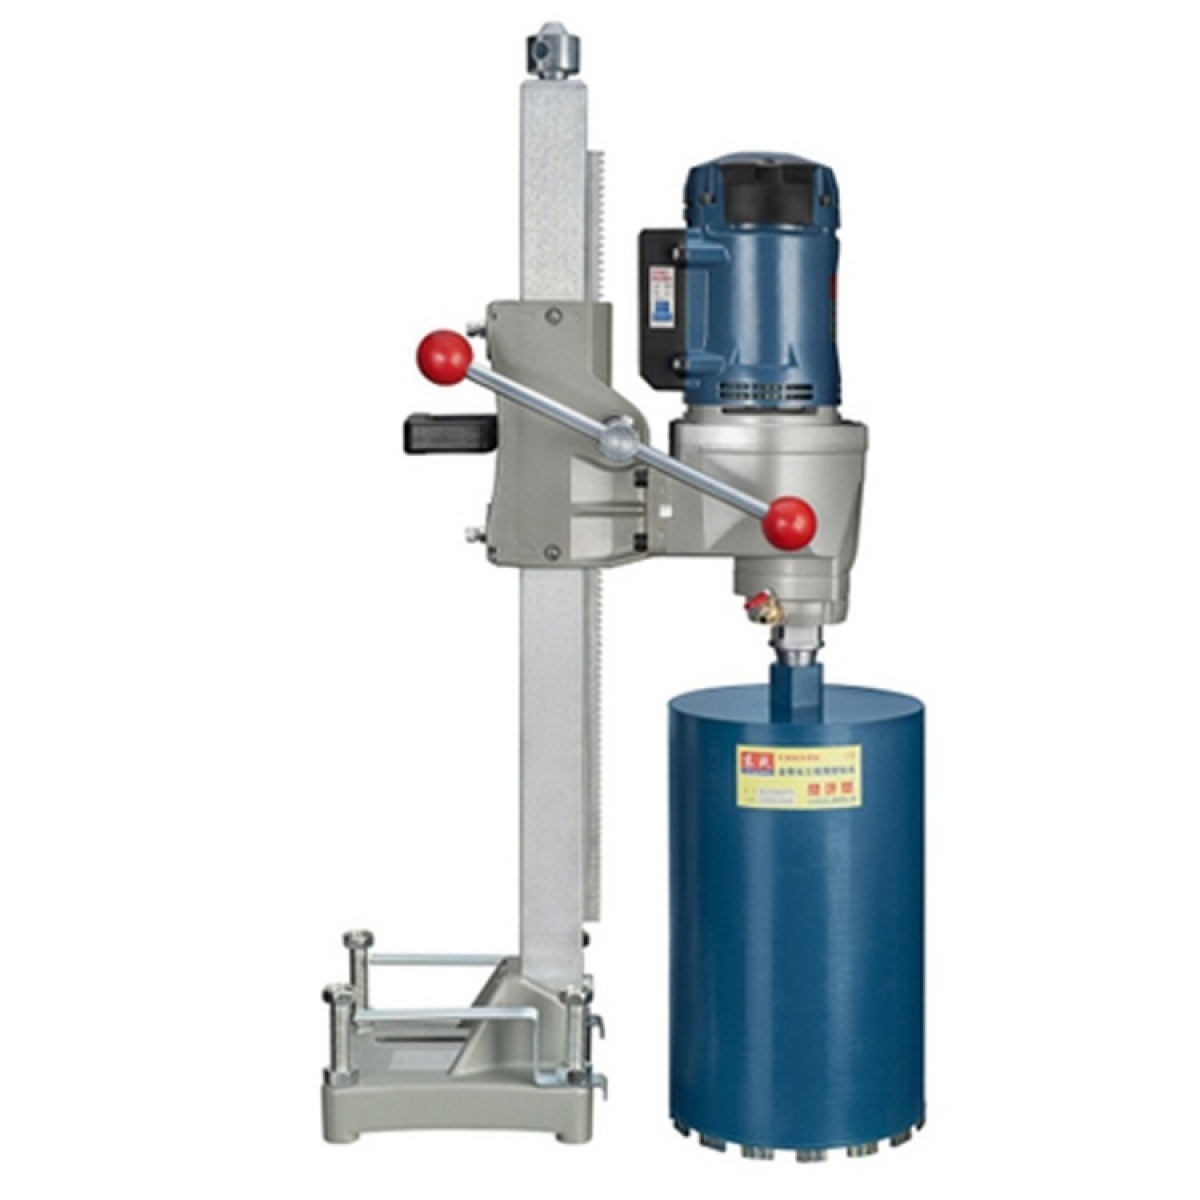 Dongcheng 3300w 200mm Diamond Core Drill Machine My